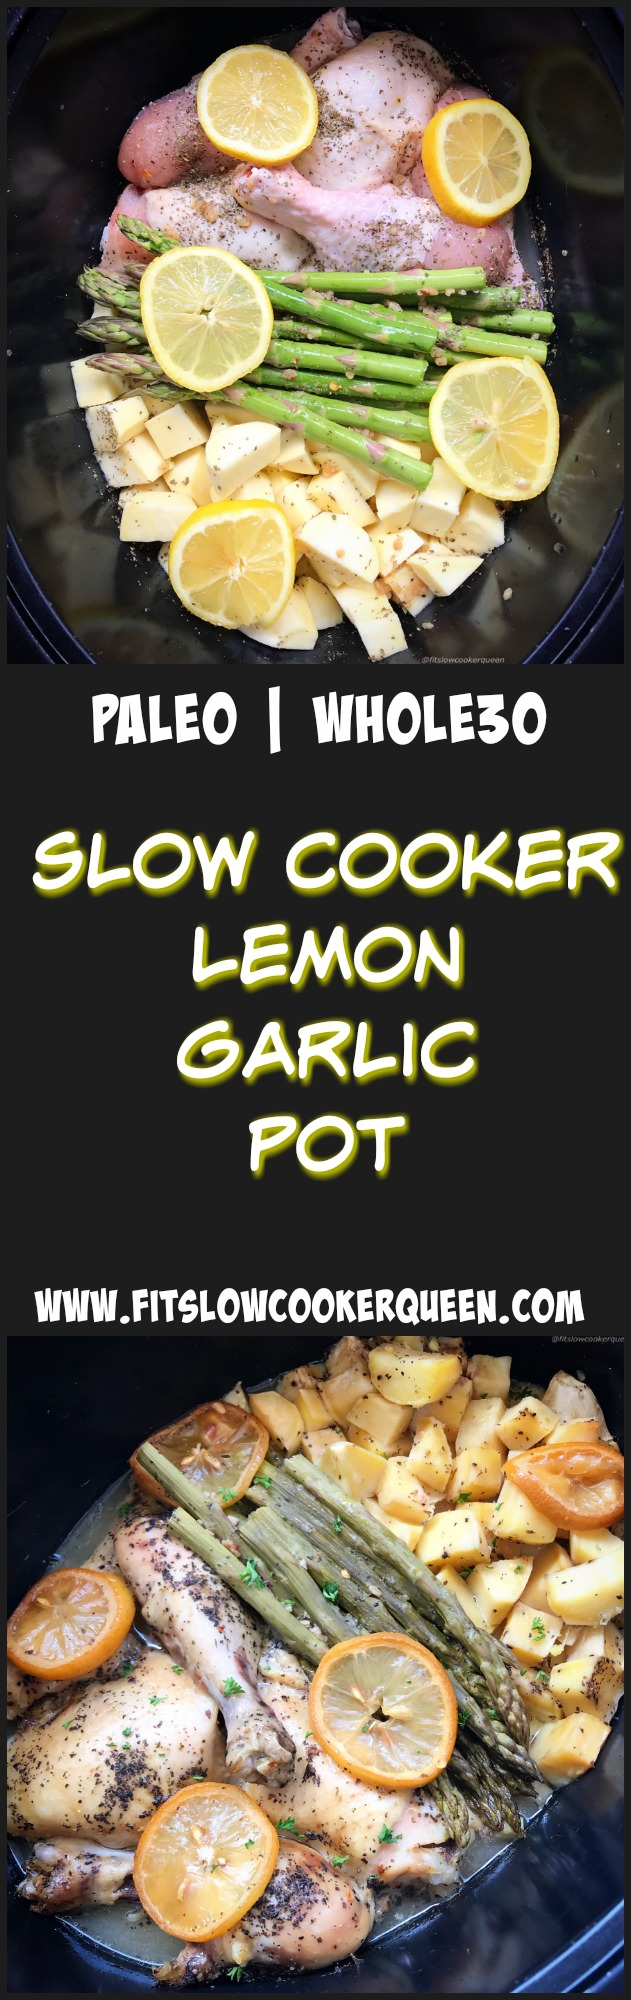 A light, homemade lemon garlic sauce accompanies any cut of chicken, potatoes or sweet potatoes, and your favorite vegetable for this flavorful whole30 and paleo slow cooker recipe.